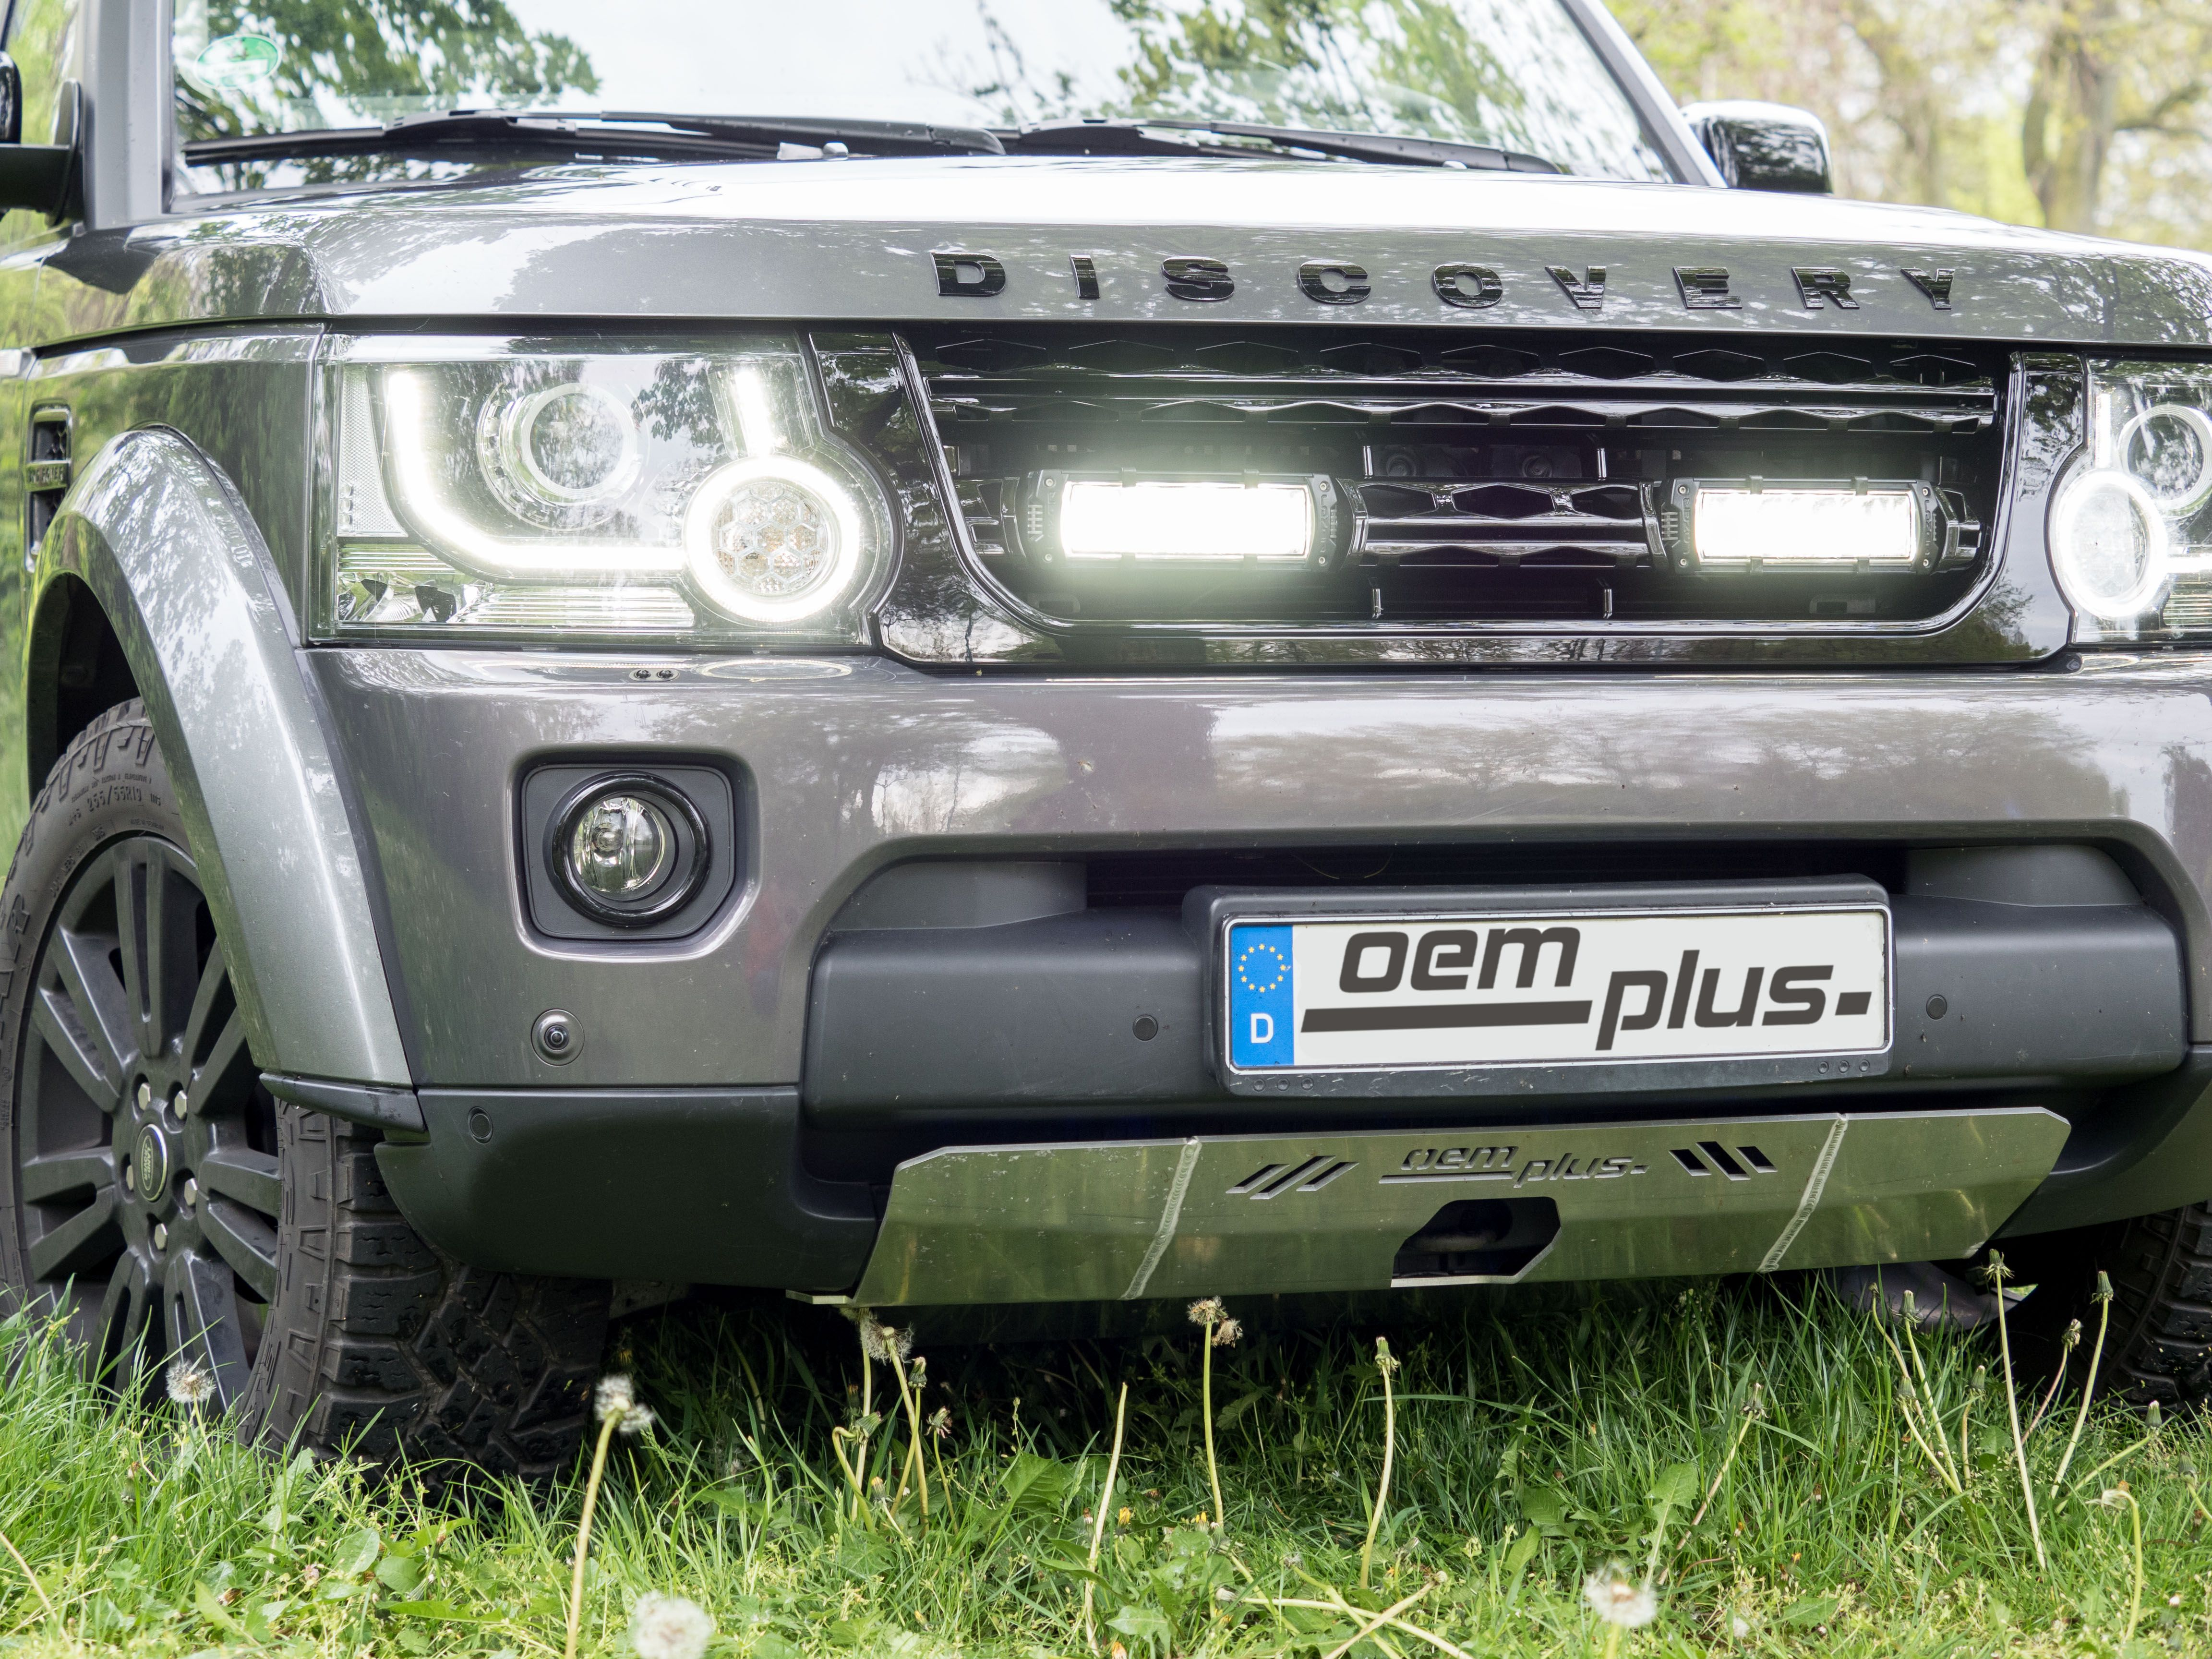 larger size name hse rare surround img landrover rover for all version views package click lux hd land sale image forums options camera system automobiles attachment